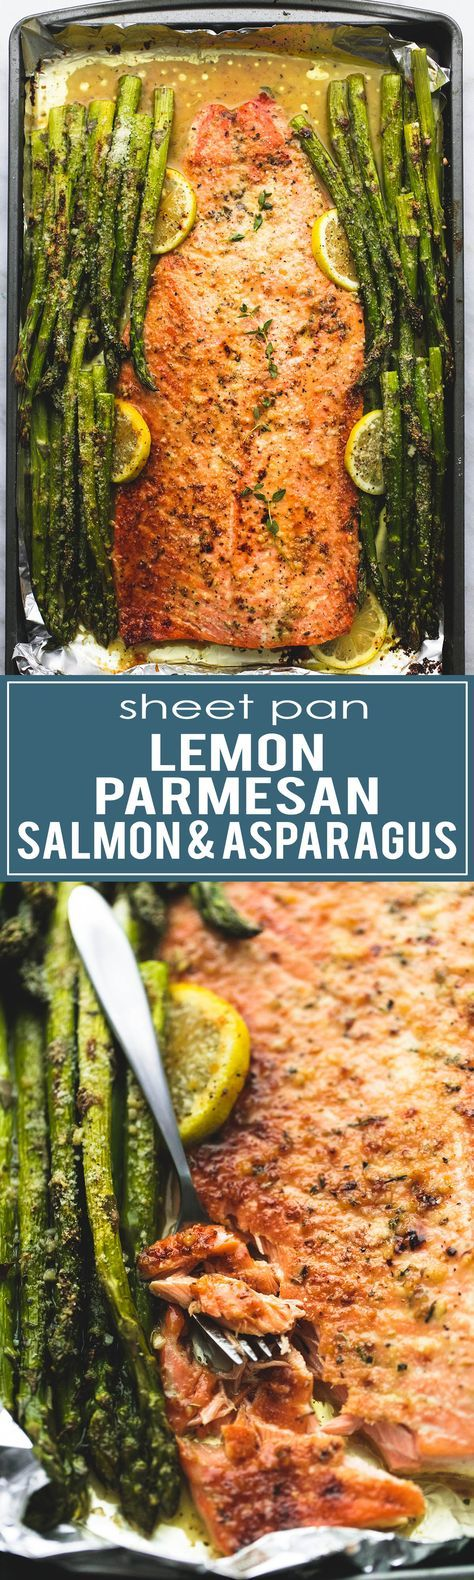 Sheet Pan Baked Lemon Parmesan Salmon & Asparagus in foil is the BEST 30 minute meal with minimal prep and cleanup!   lecremedelacrumb.com